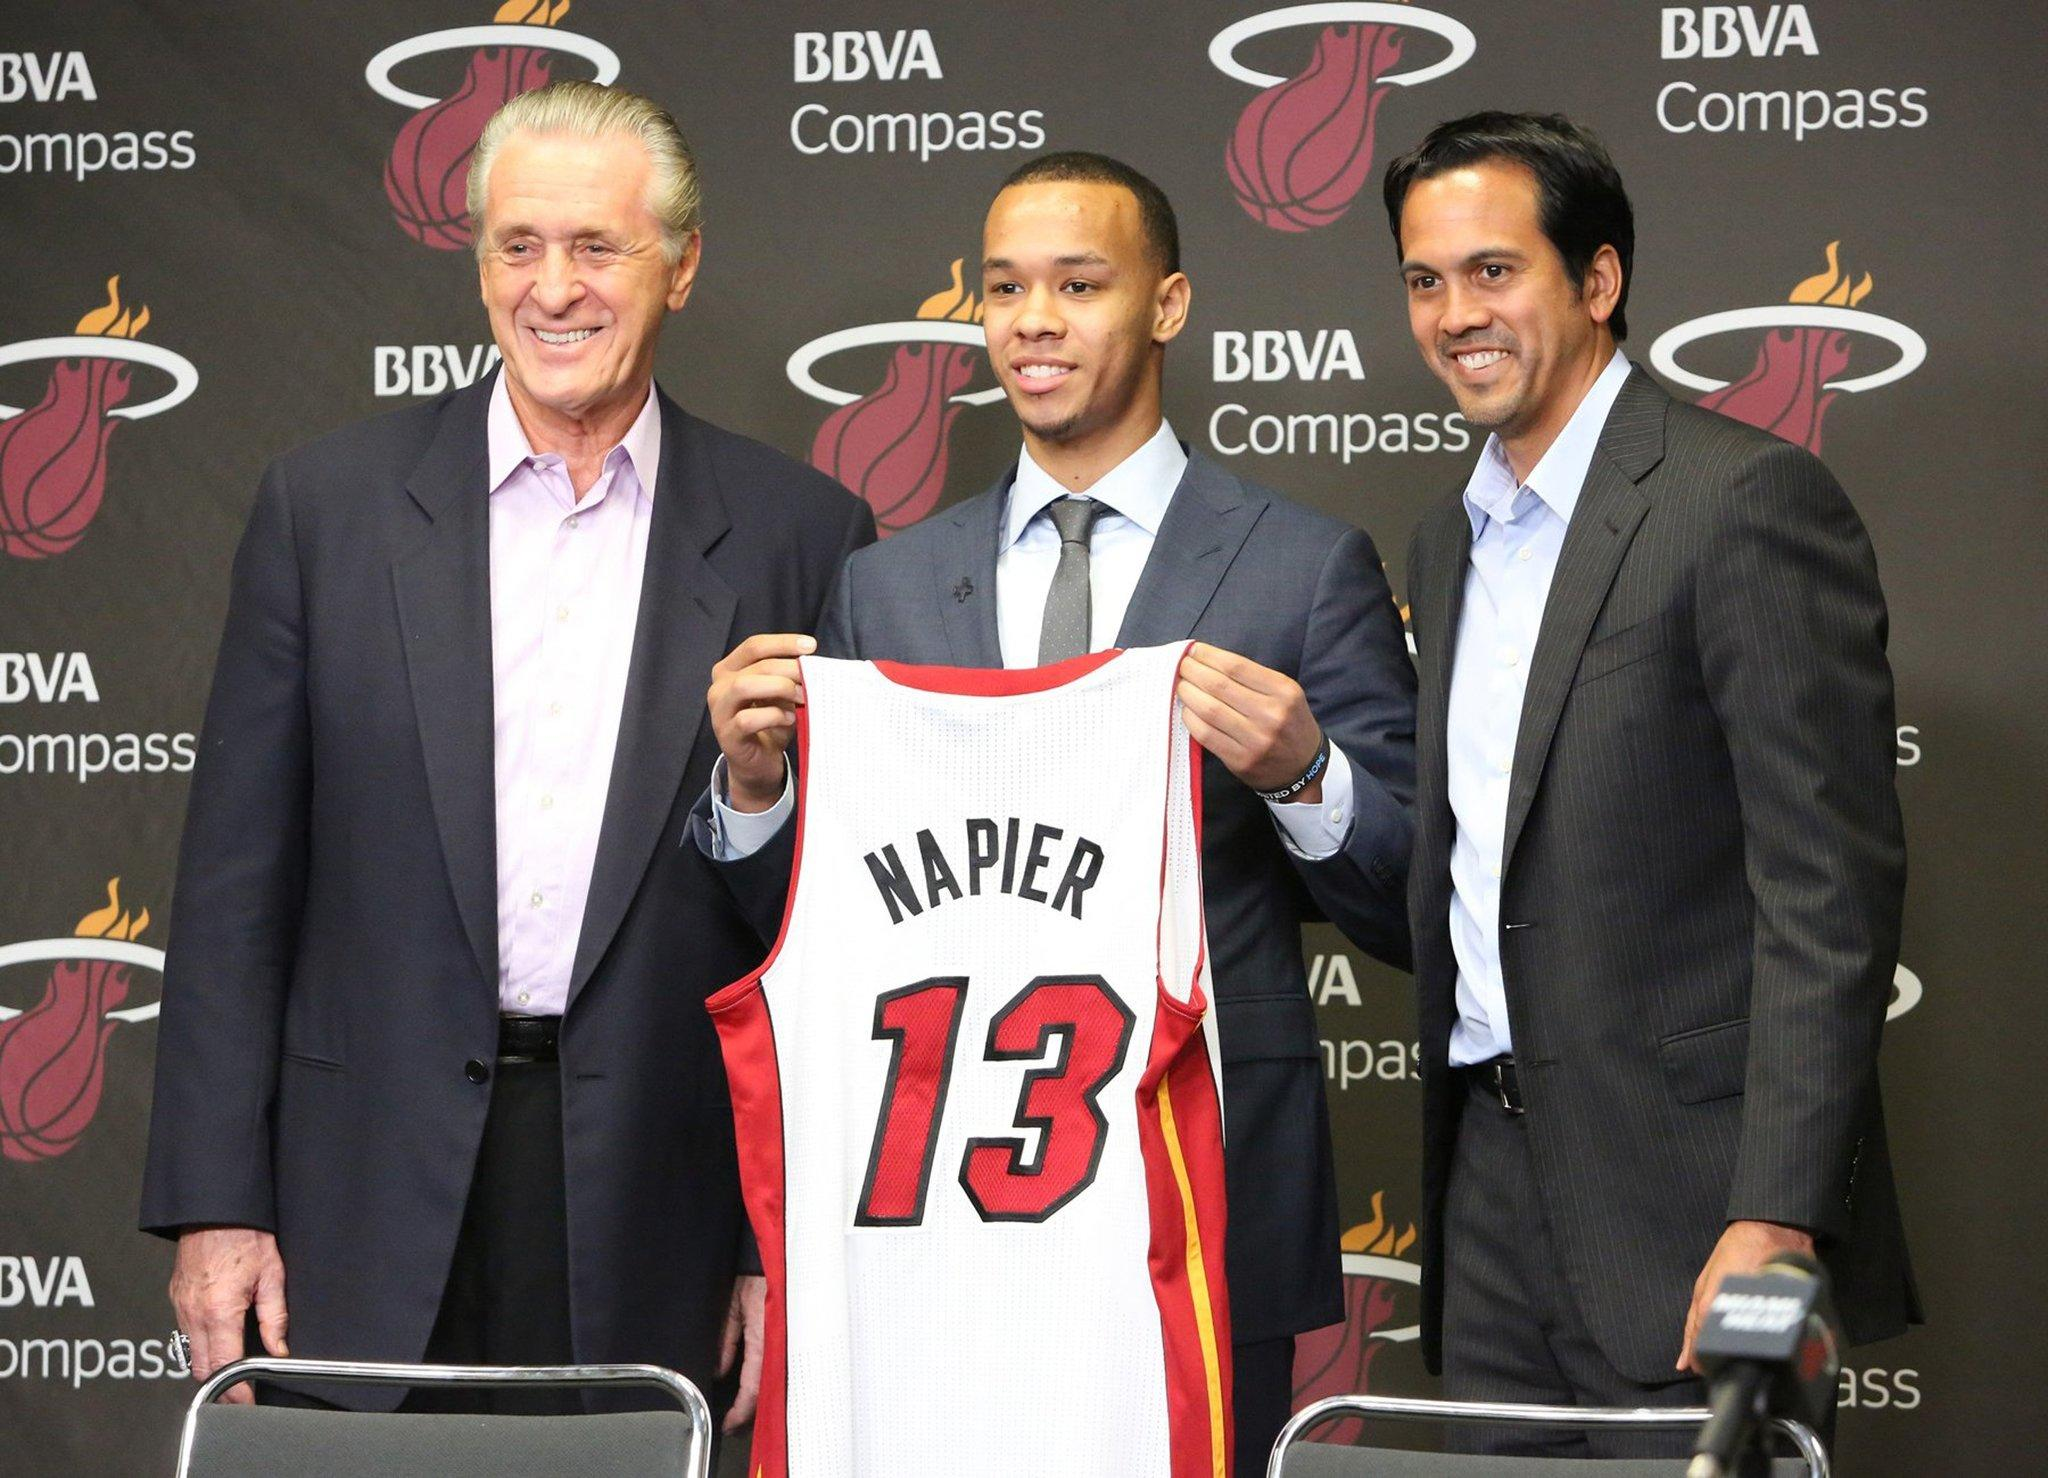 Miami Heat president Pat Riley, left, and Heat head coach Erik Spoelstra, right, pose for a photo with Shabazz Napier, the newest member of the team, at the AmericanAirlines Arena in Miami on Monday, June 30, 2014. (Hector Gabino/El Nuevo Herald/MCT)